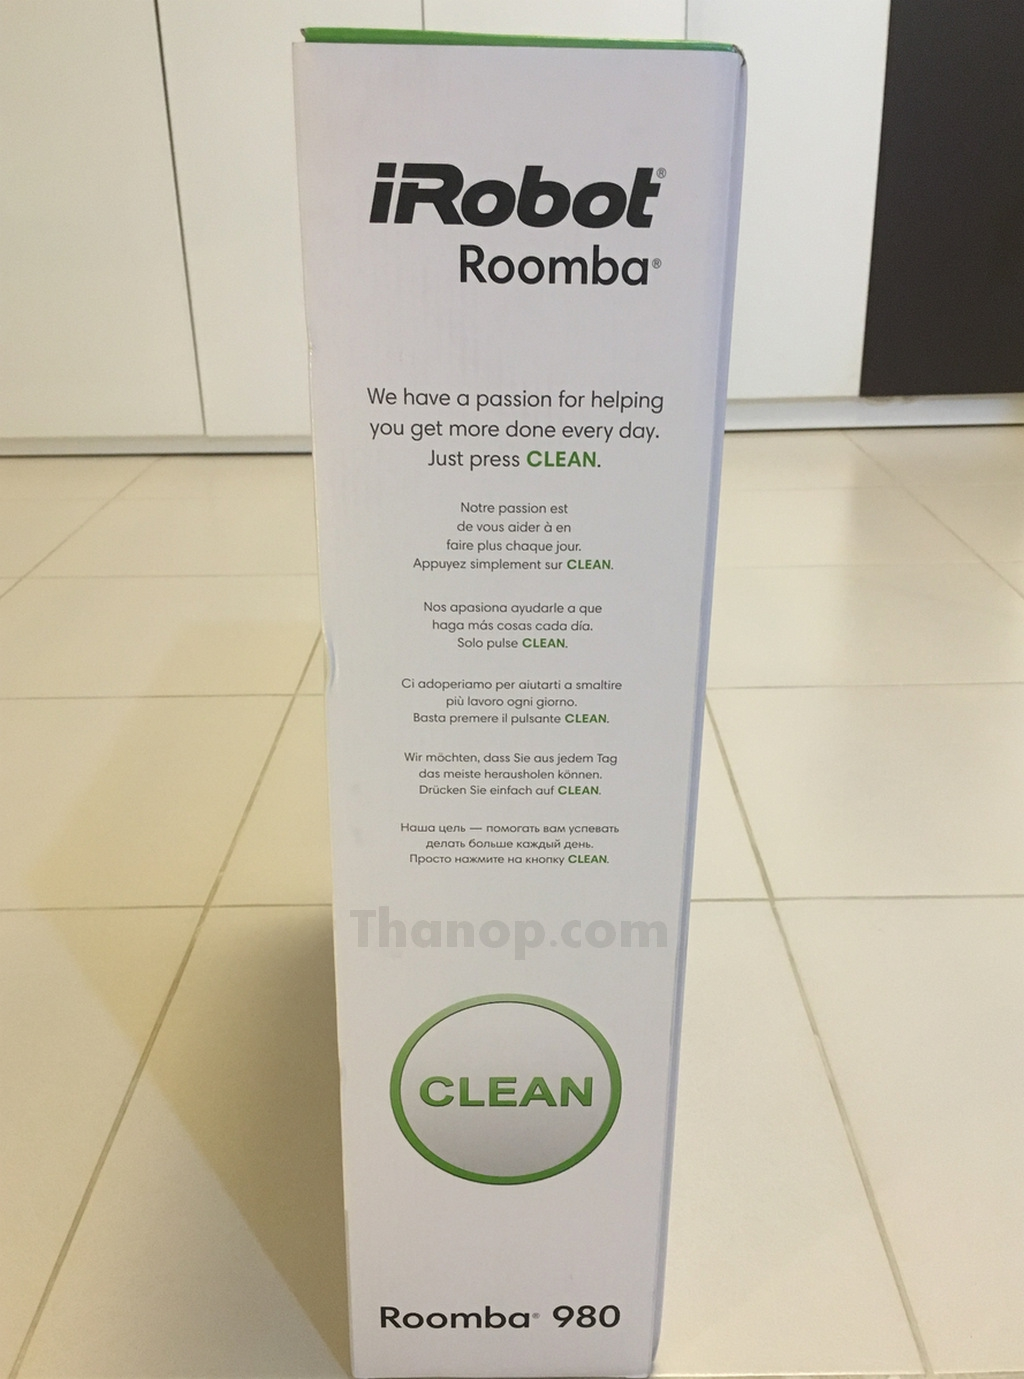 iRobot Roomba 980 Box Left